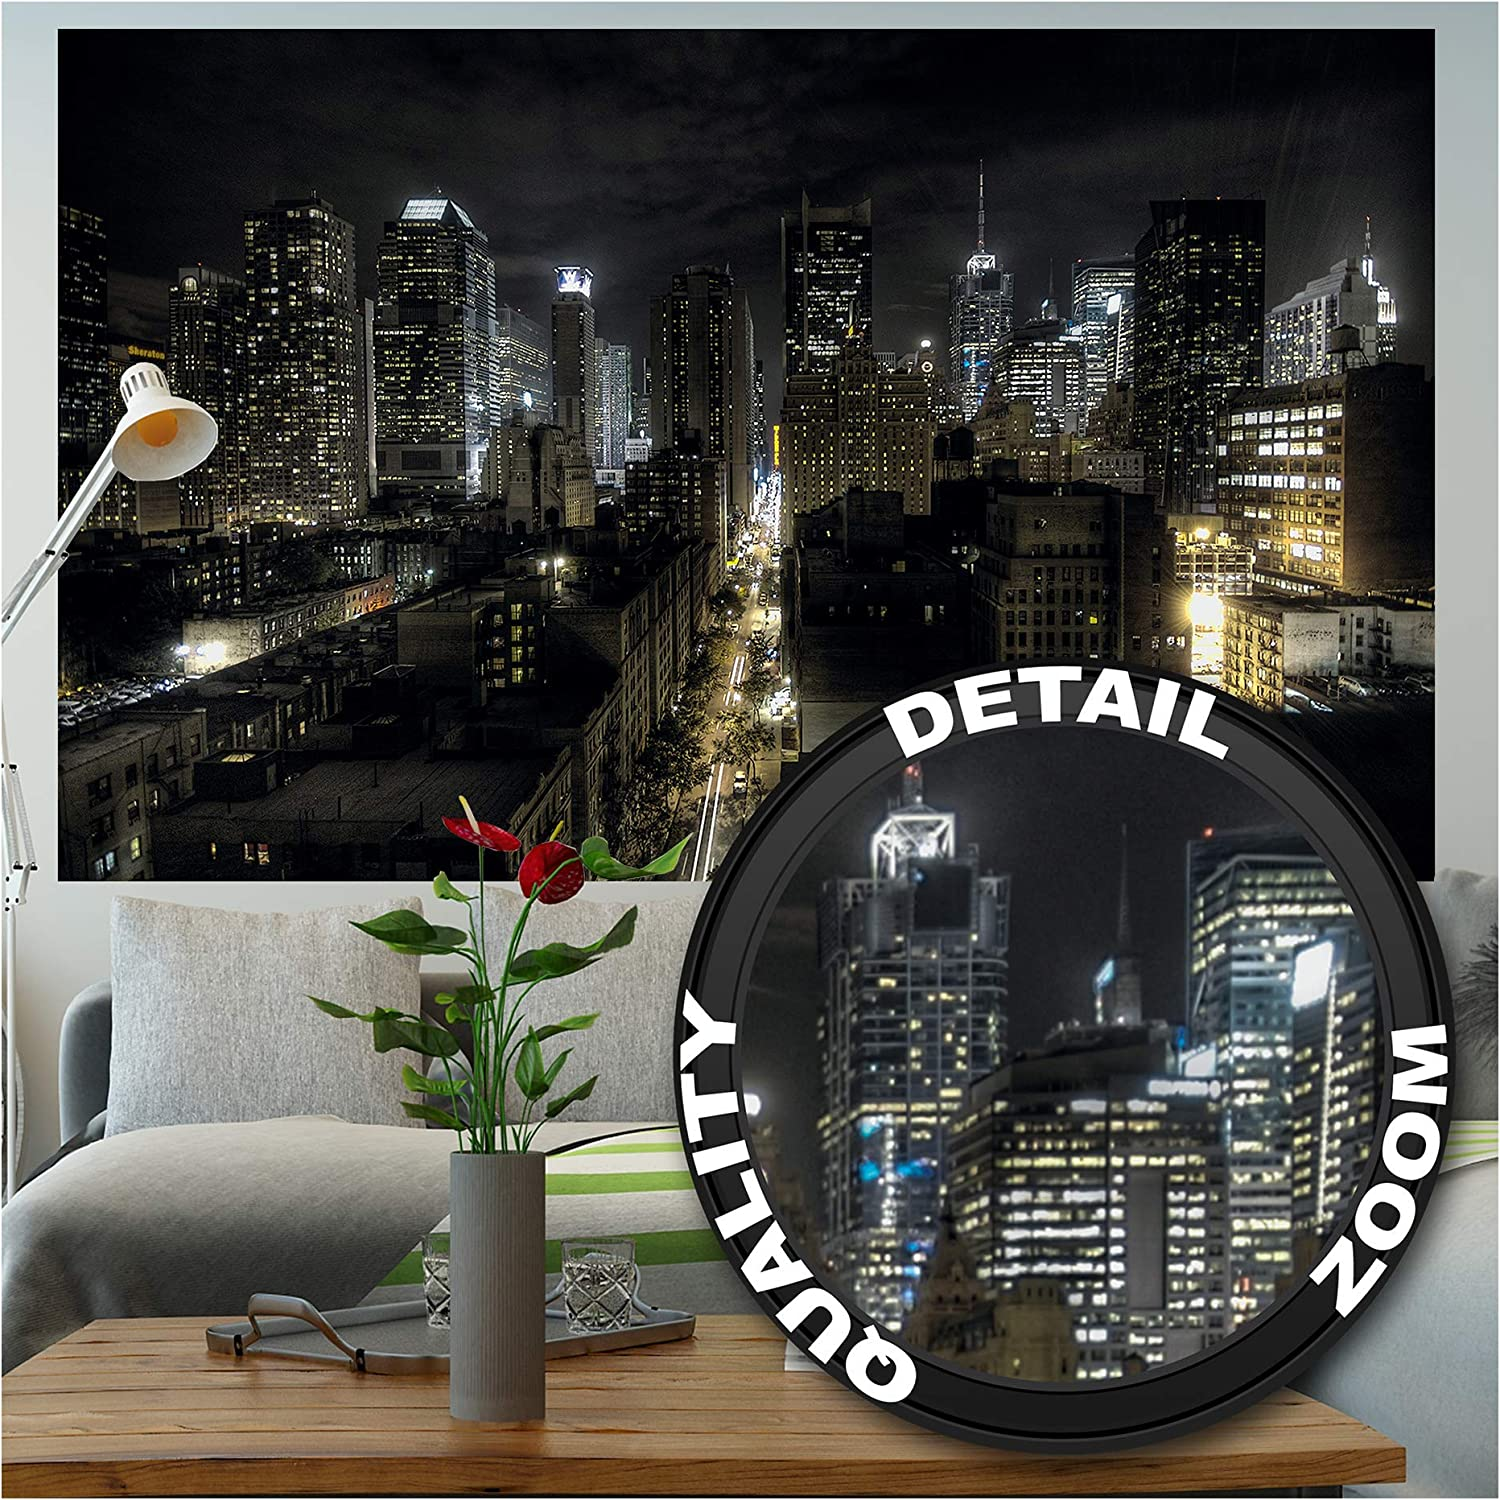 Photo Wallpaper – Manhattan at Night – Picture Decoration New York City American Metropolis USA NYC Illuminated Skyscrapers Image Decor Wall Mural (82.7x55.1in - 210x140cm)